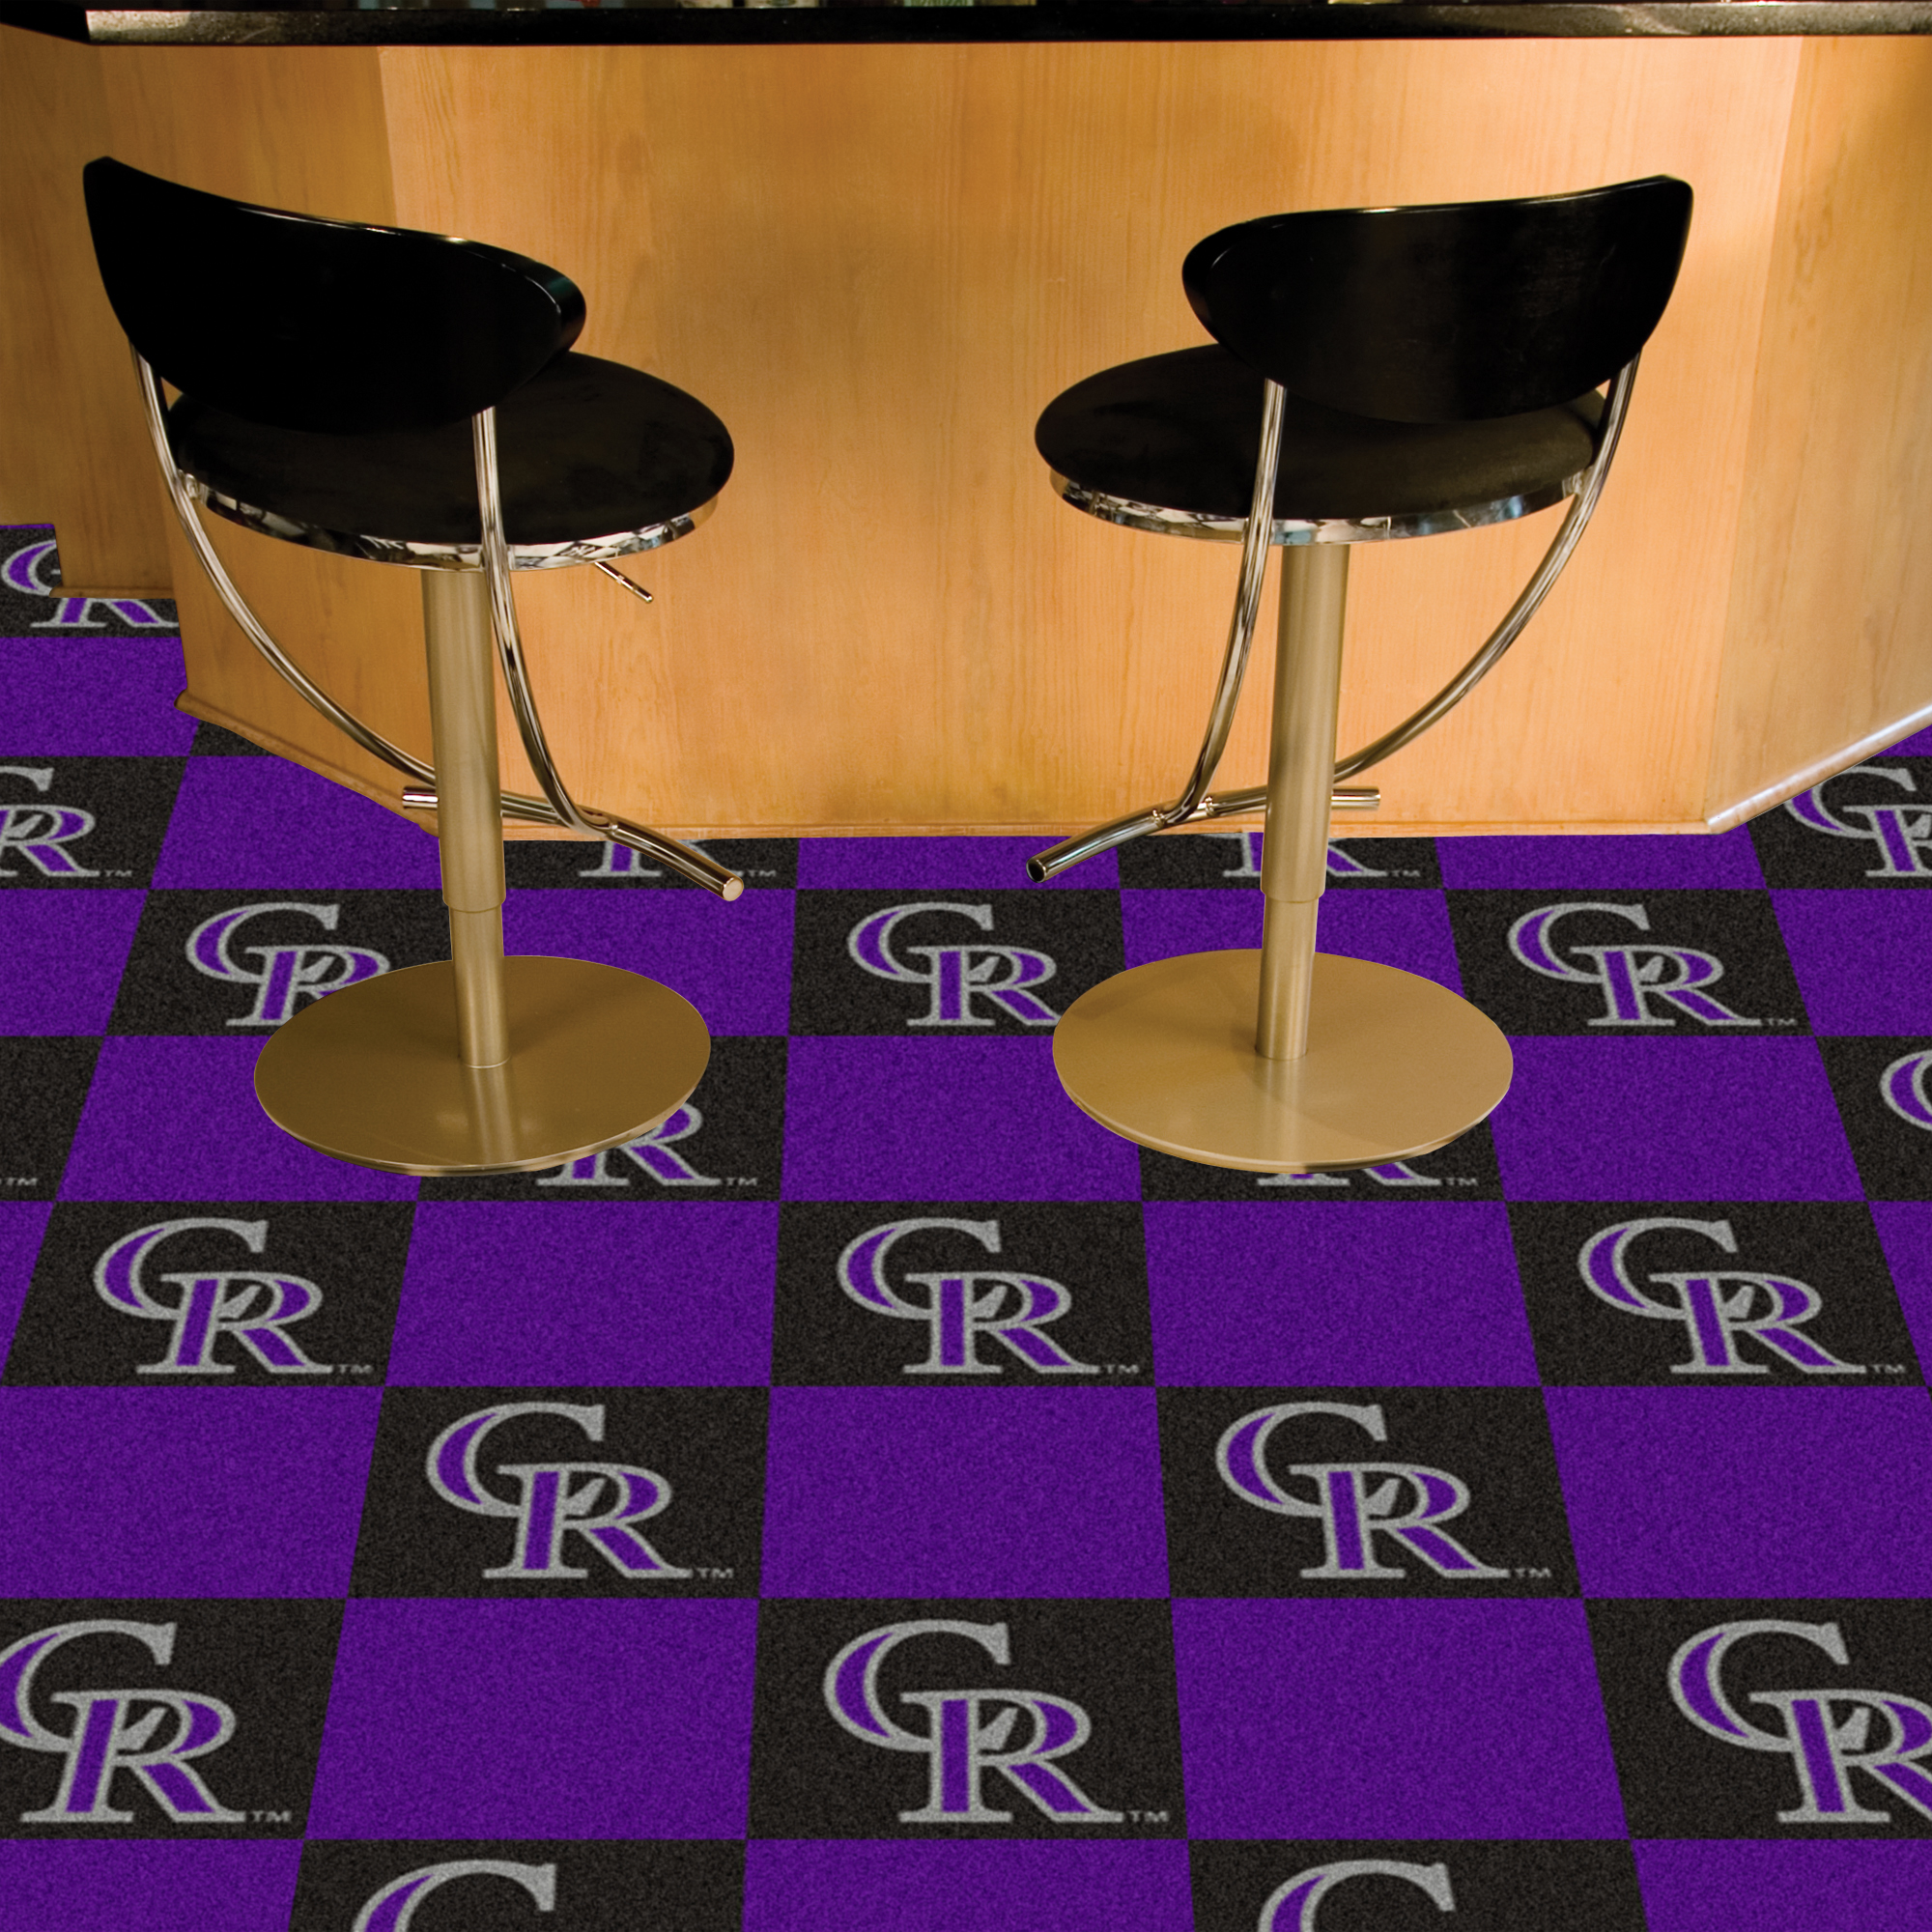 Colorado Rockies Carpet Tiles 18x18 in.